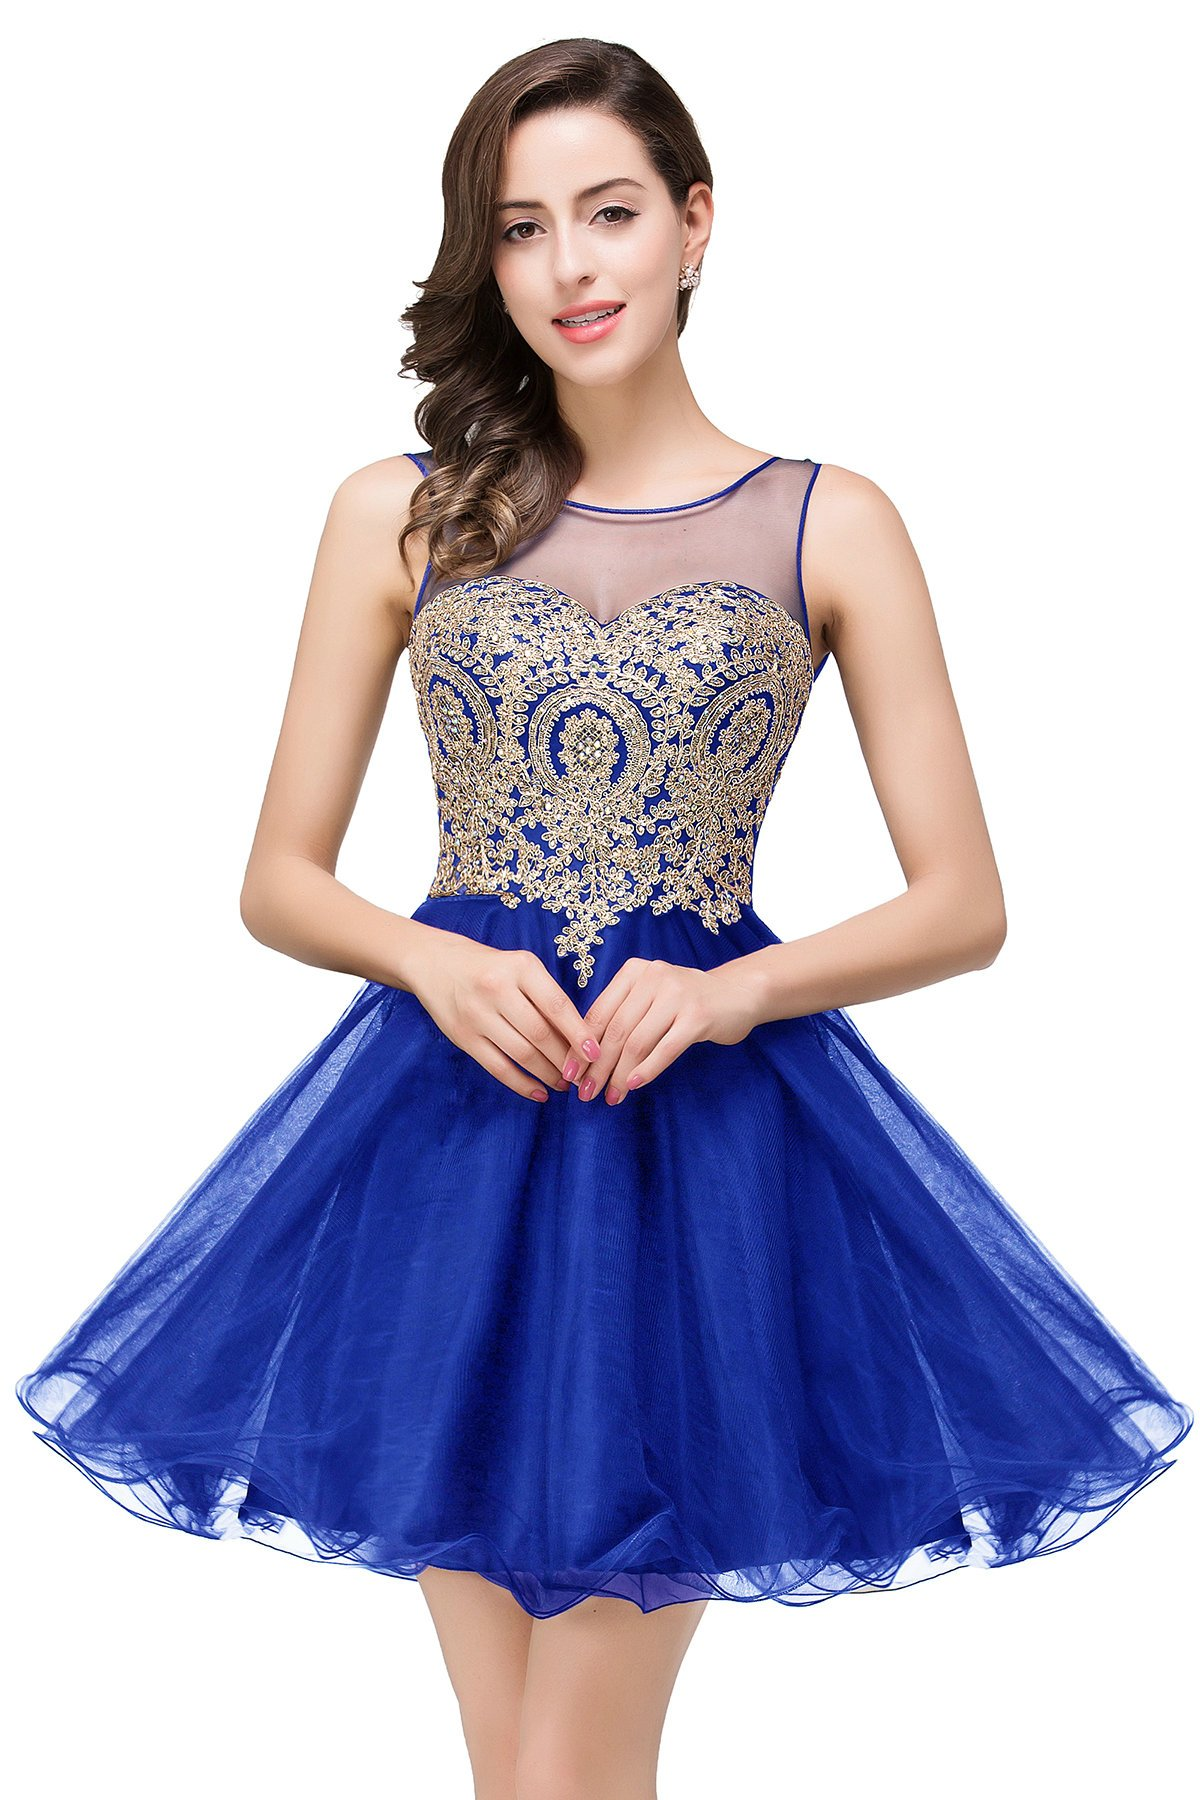 2fb54d2129 Stylish Prom Dress to celetrabe your prom day with firends